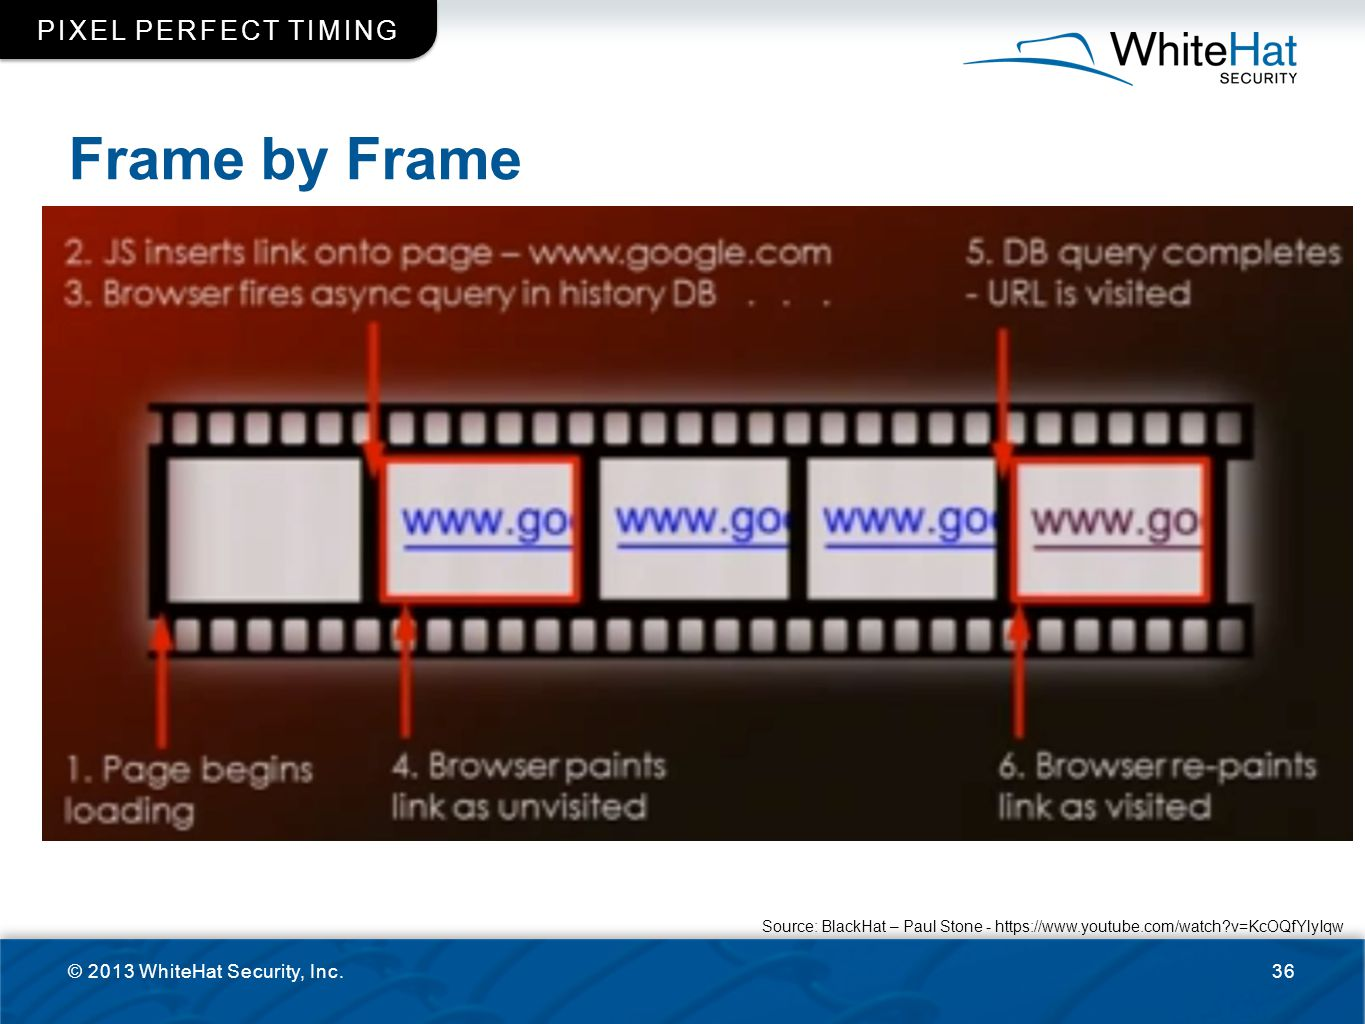 Frame by Frame Pixel perfect timing © 2013 WhiteHat Security, Inc.